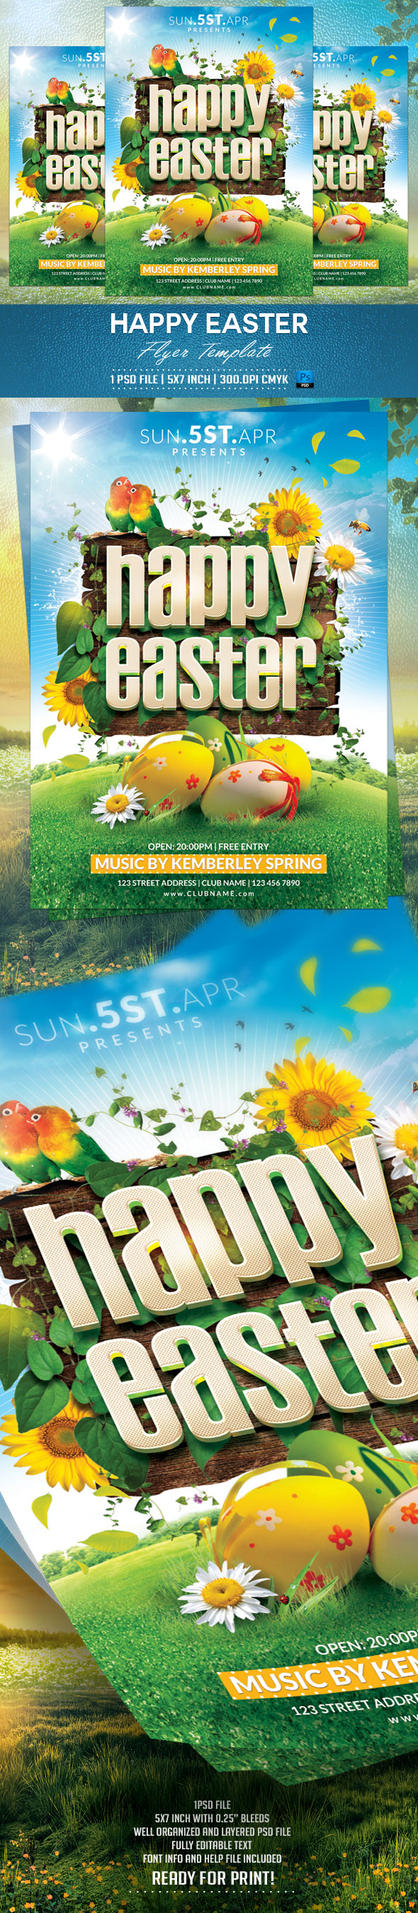 Happy Easter Flyer Template by BriellDesign